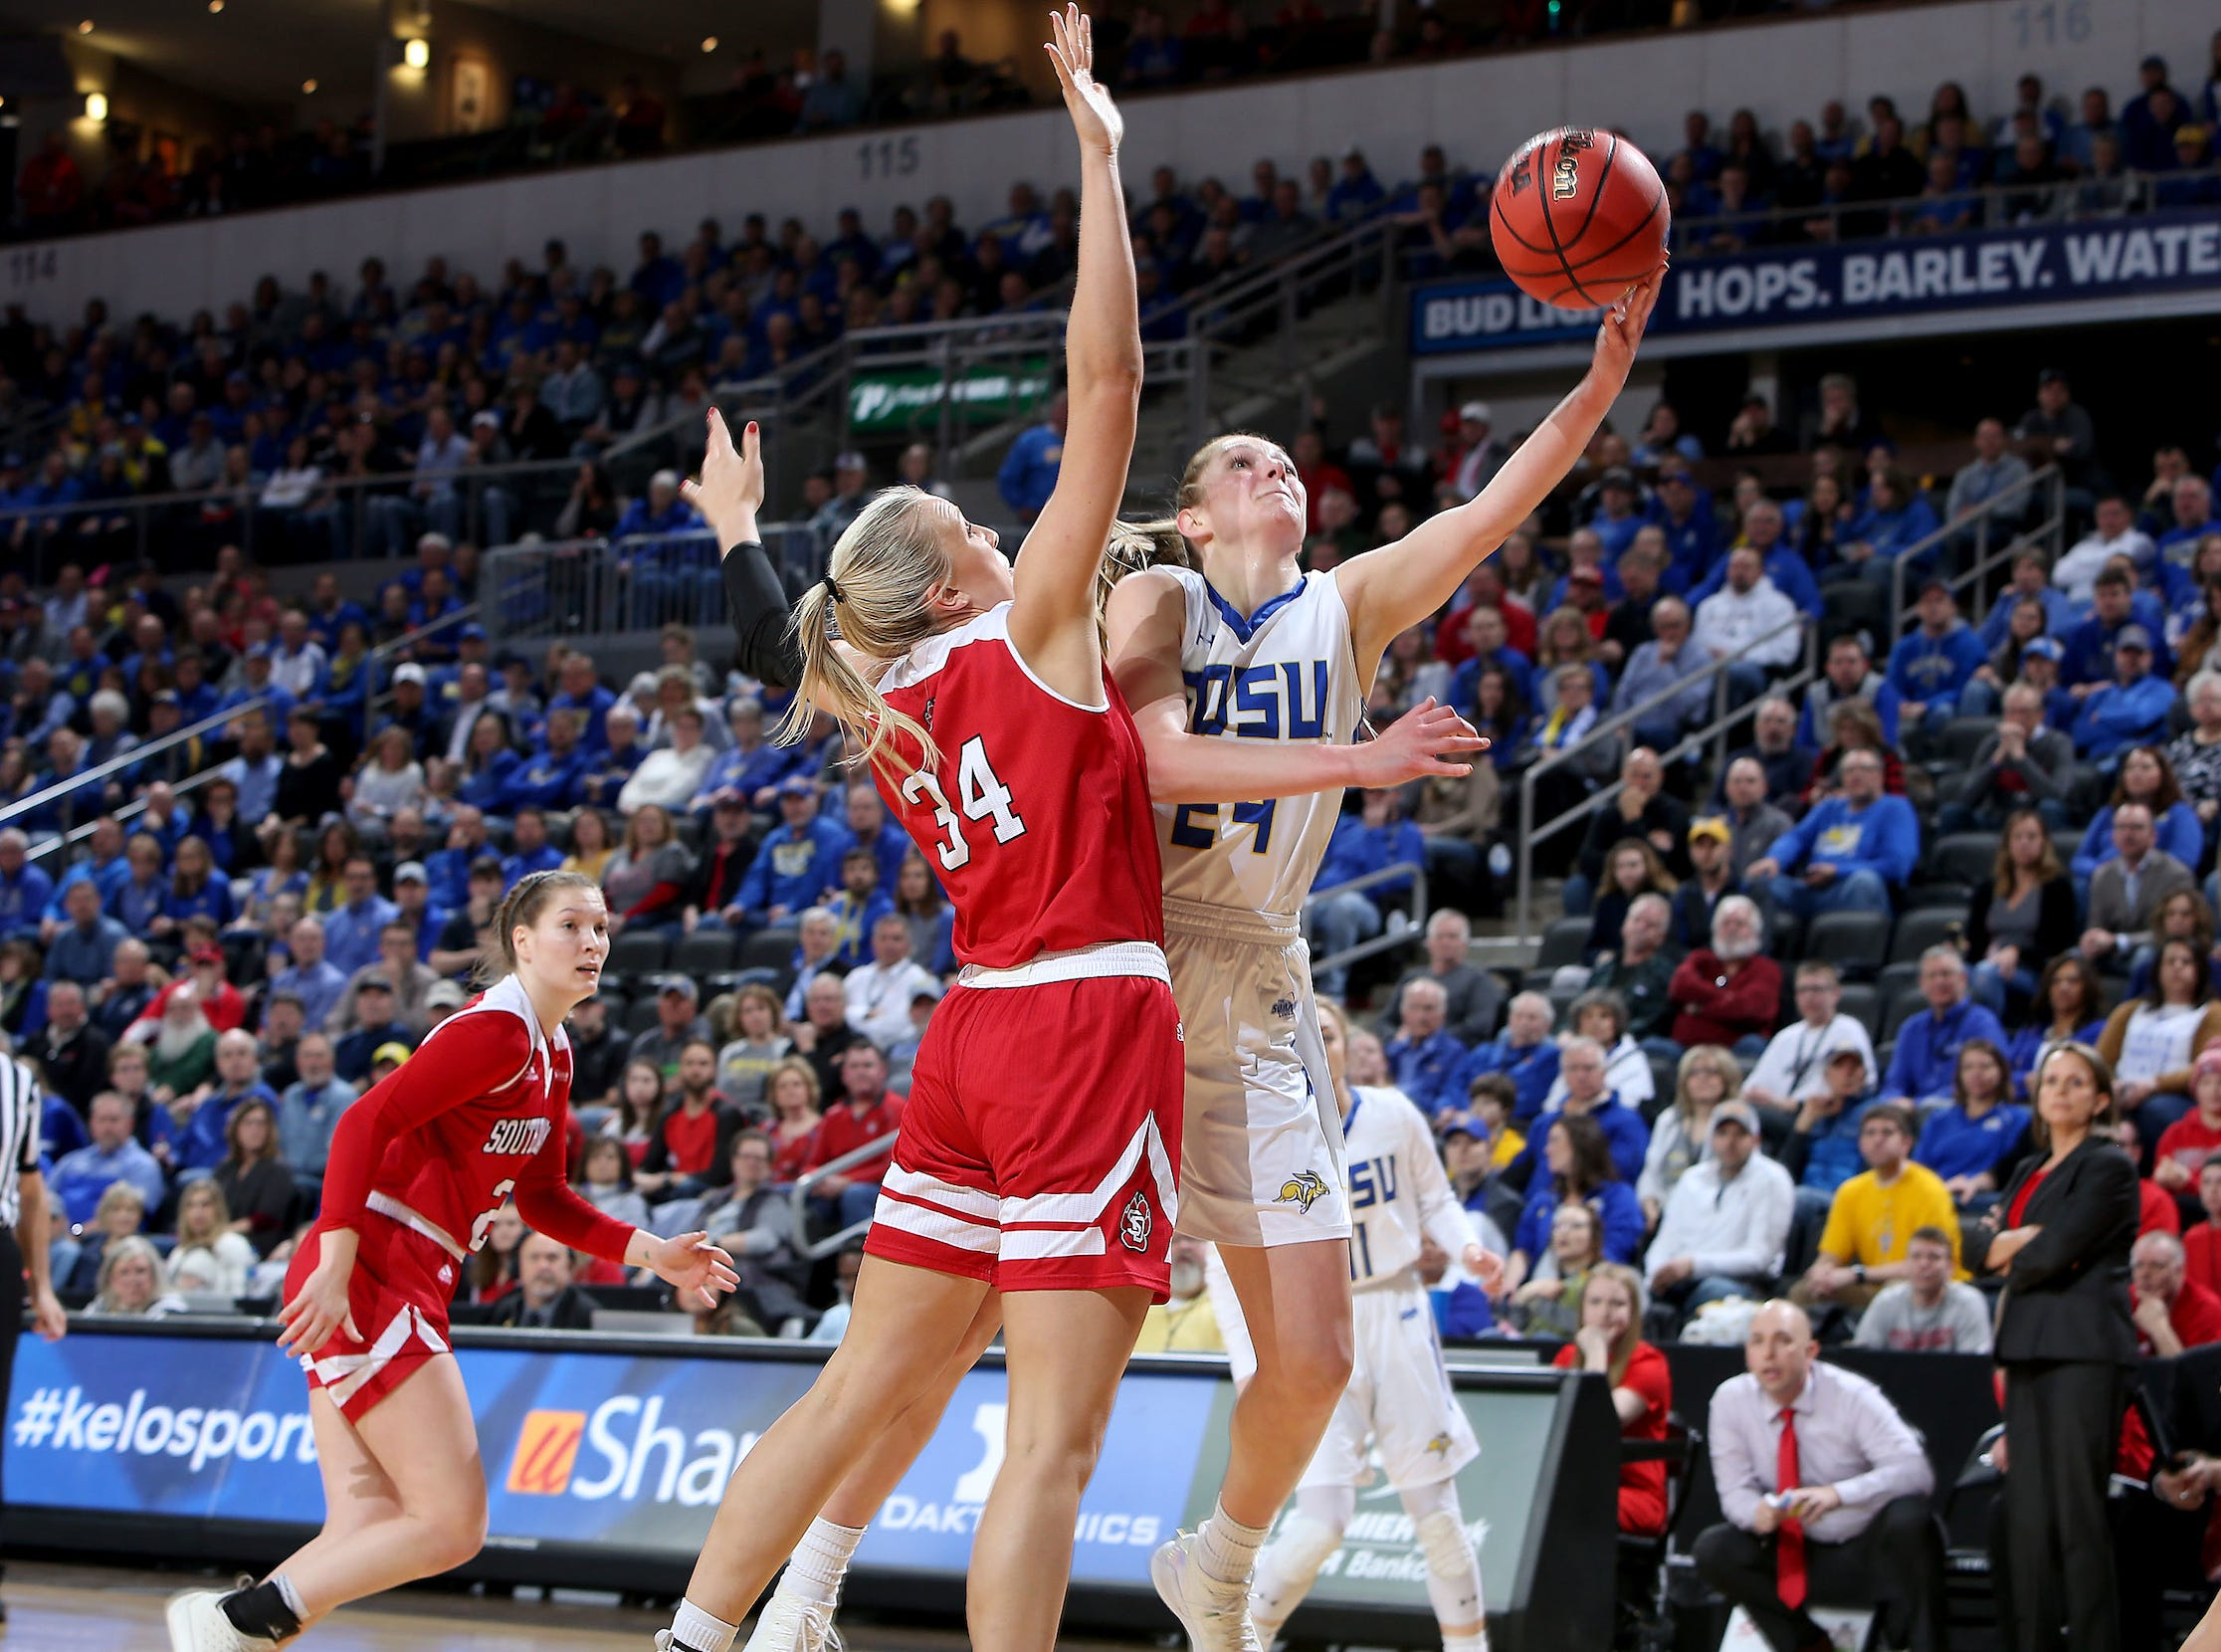 SIOUX FALLS, SD - MARCH 11: Tagyn Larson #24 from South Dakota State lays in a shot around Hannah Sjerven #34 from South Dakota at the 2019 Summit League Basketball Tournament at the Denny Sanford Premier Center in Sioux Falls. (Photo by Dave Eggen/Inertia)